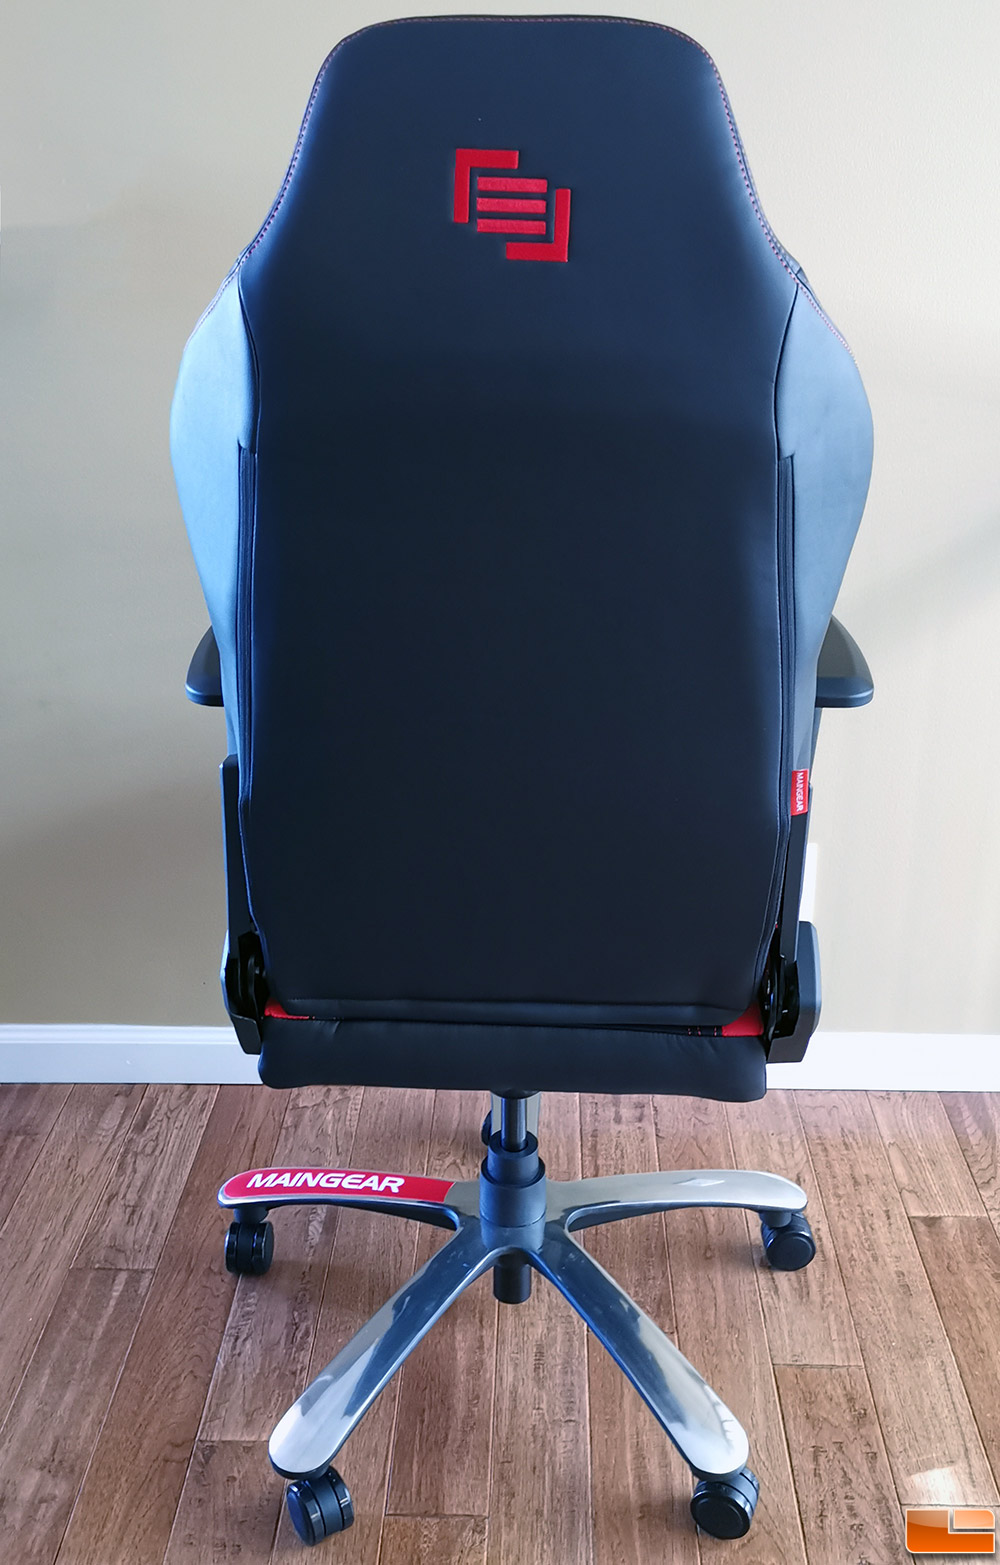 Awe Inspiring Maingear Forma R Nero Gaming Chair Review Legit Reviews Andrewgaddart Wooden Chair Designs For Living Room Andrewgaddartcom